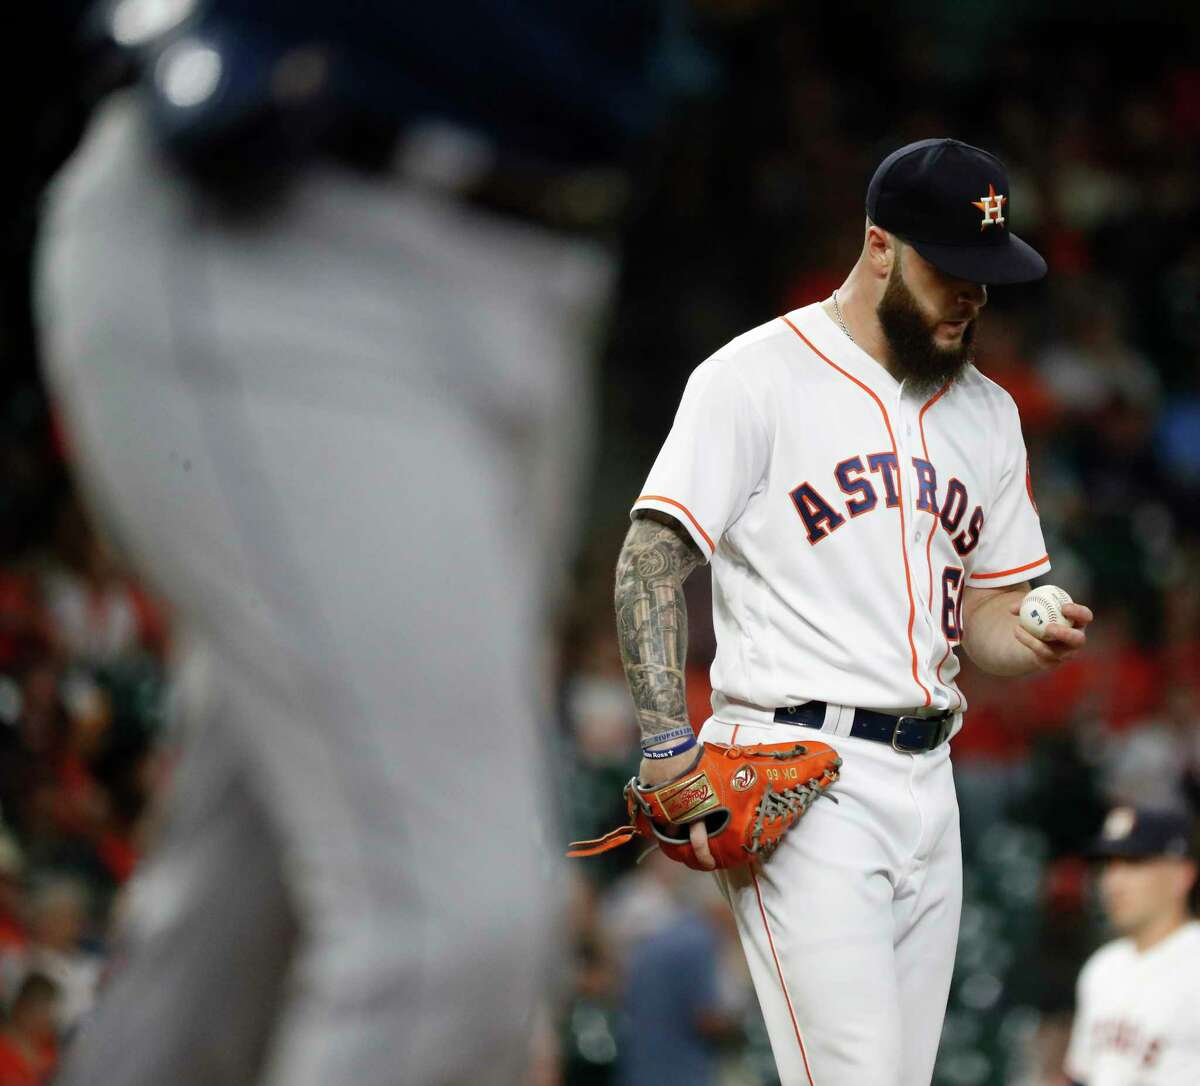 Houston Astros starting pitcher Dallas Keuchel (60) looks at the ball after walking Seattle Mariners Ryon Healy during the first inning of an MLB baseball game at Minute Maid Park, Wednesday, September 19, 2018, in Houston.